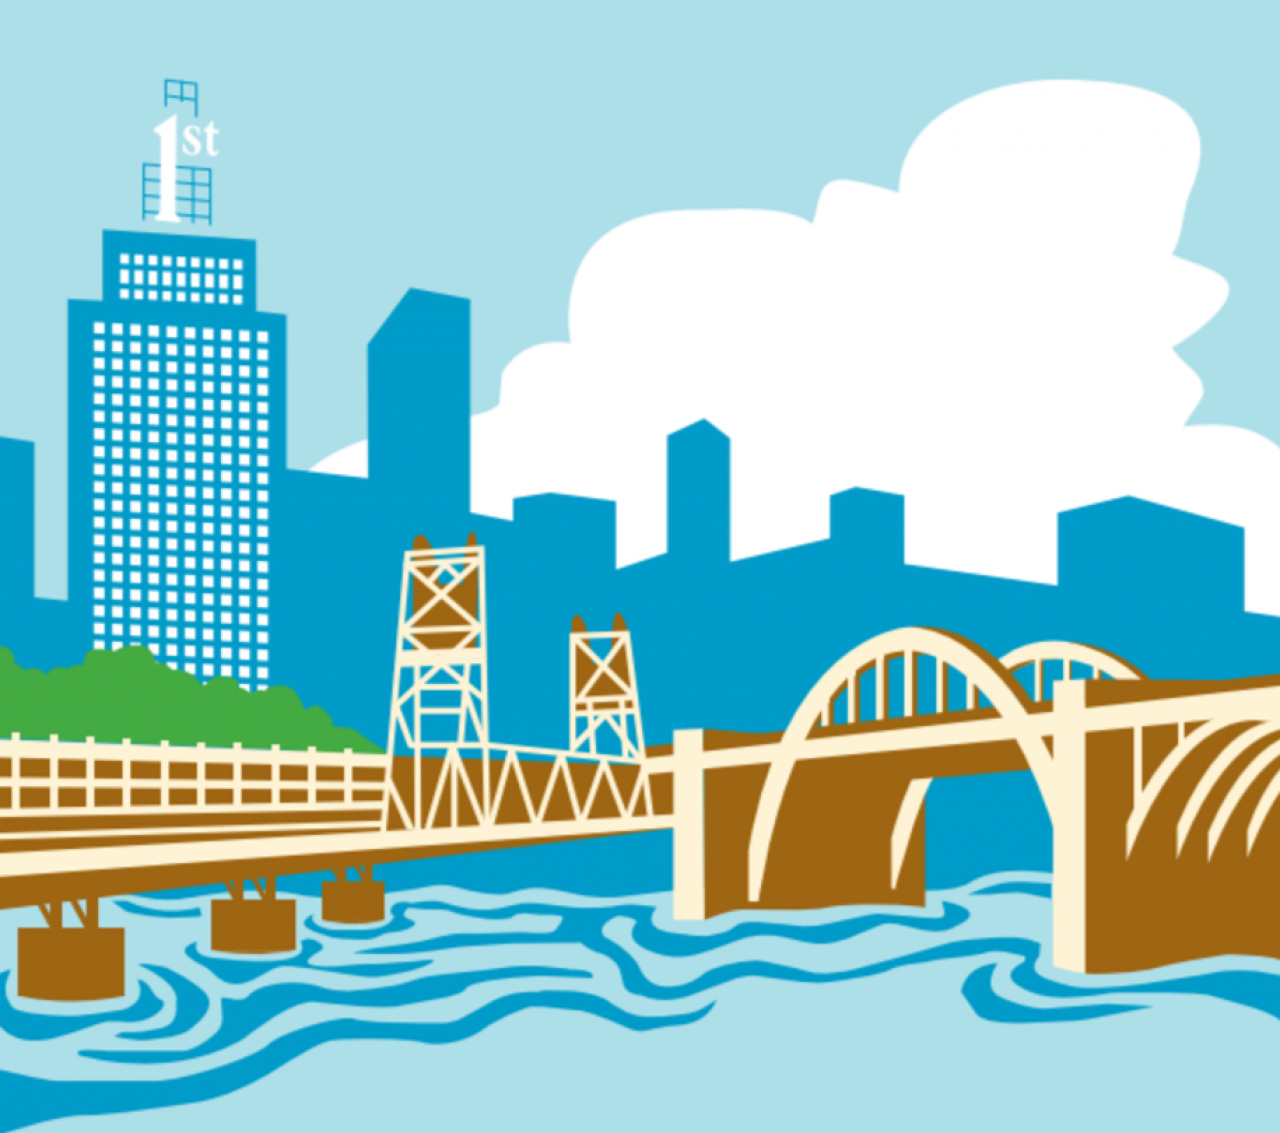 We're excited to host the fall fundraiser on the river in downtown St. Paul.